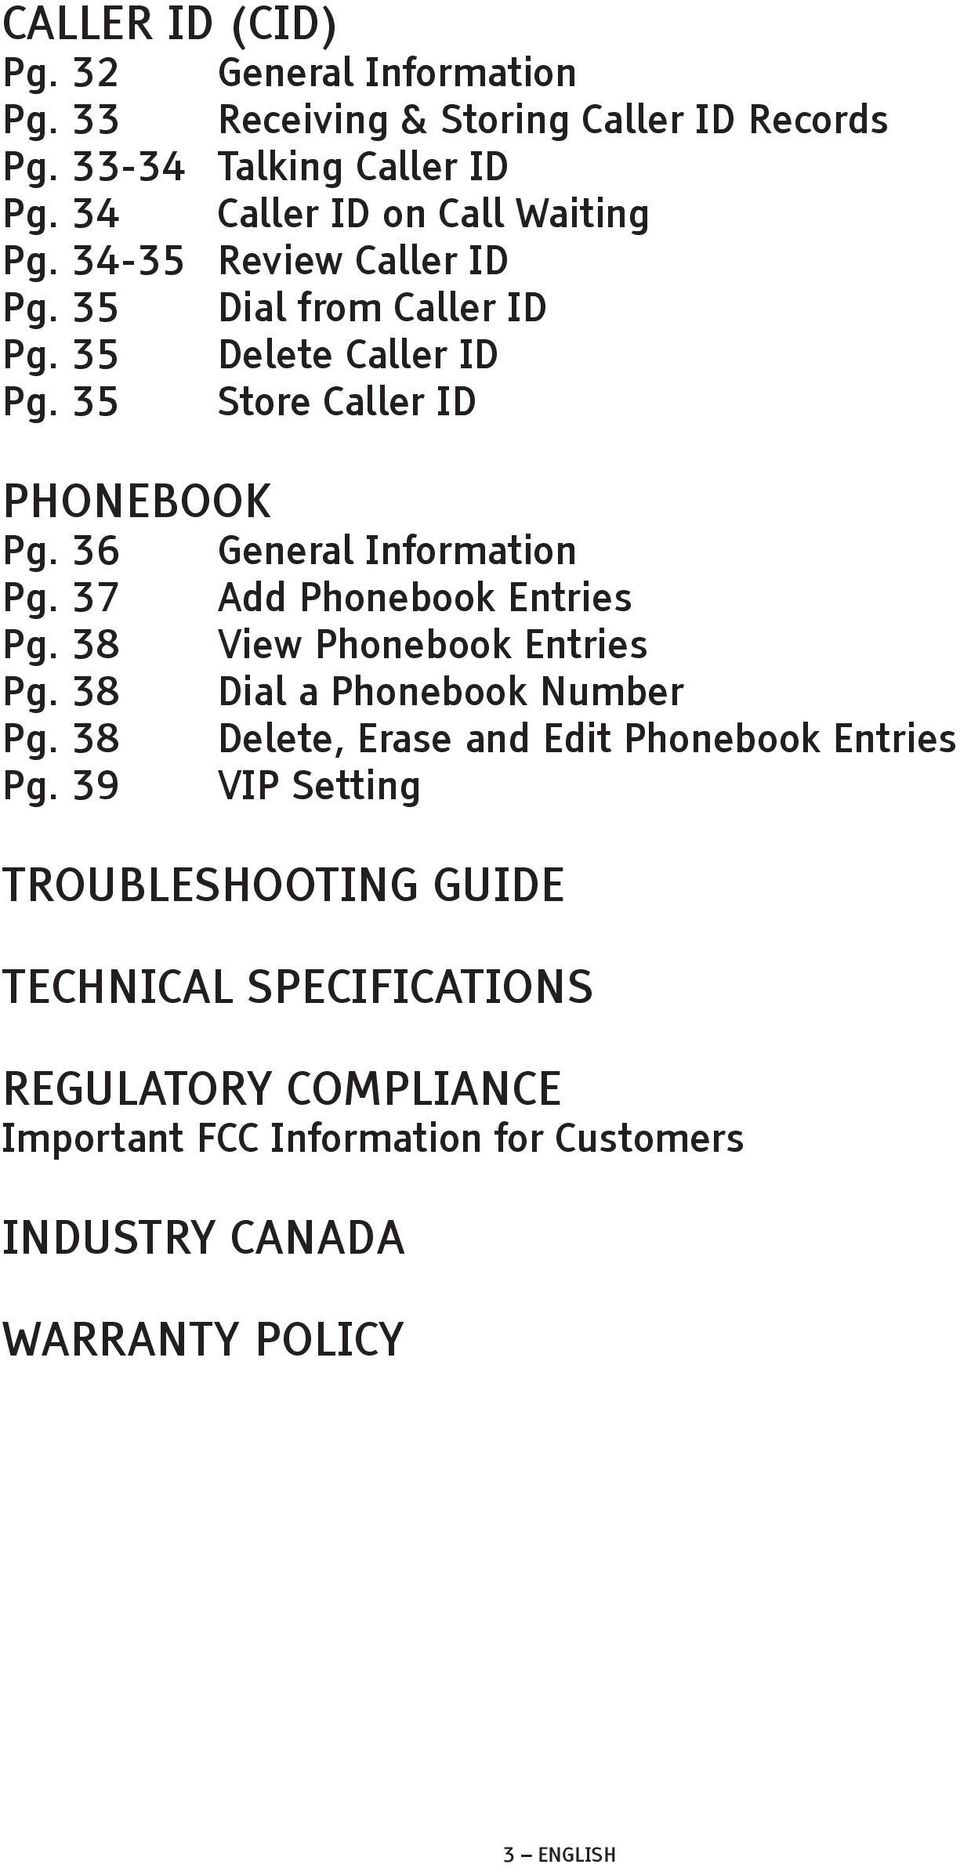 36 General Information Pg. 37 Add Phonebook Entries Pg. 38 View Phonebook Entries Pg. 38 Dial a Phonebook Number Pg.